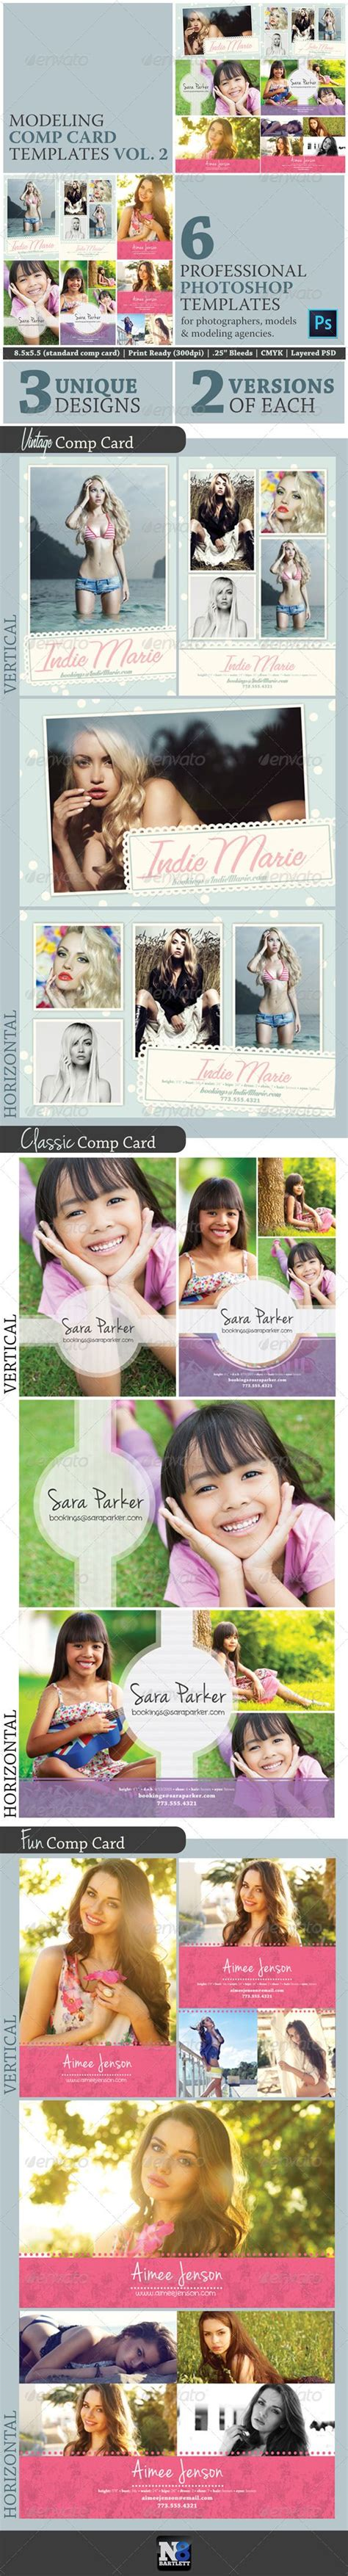 comp card design templates model comp card template kit vol 2 model comp card and